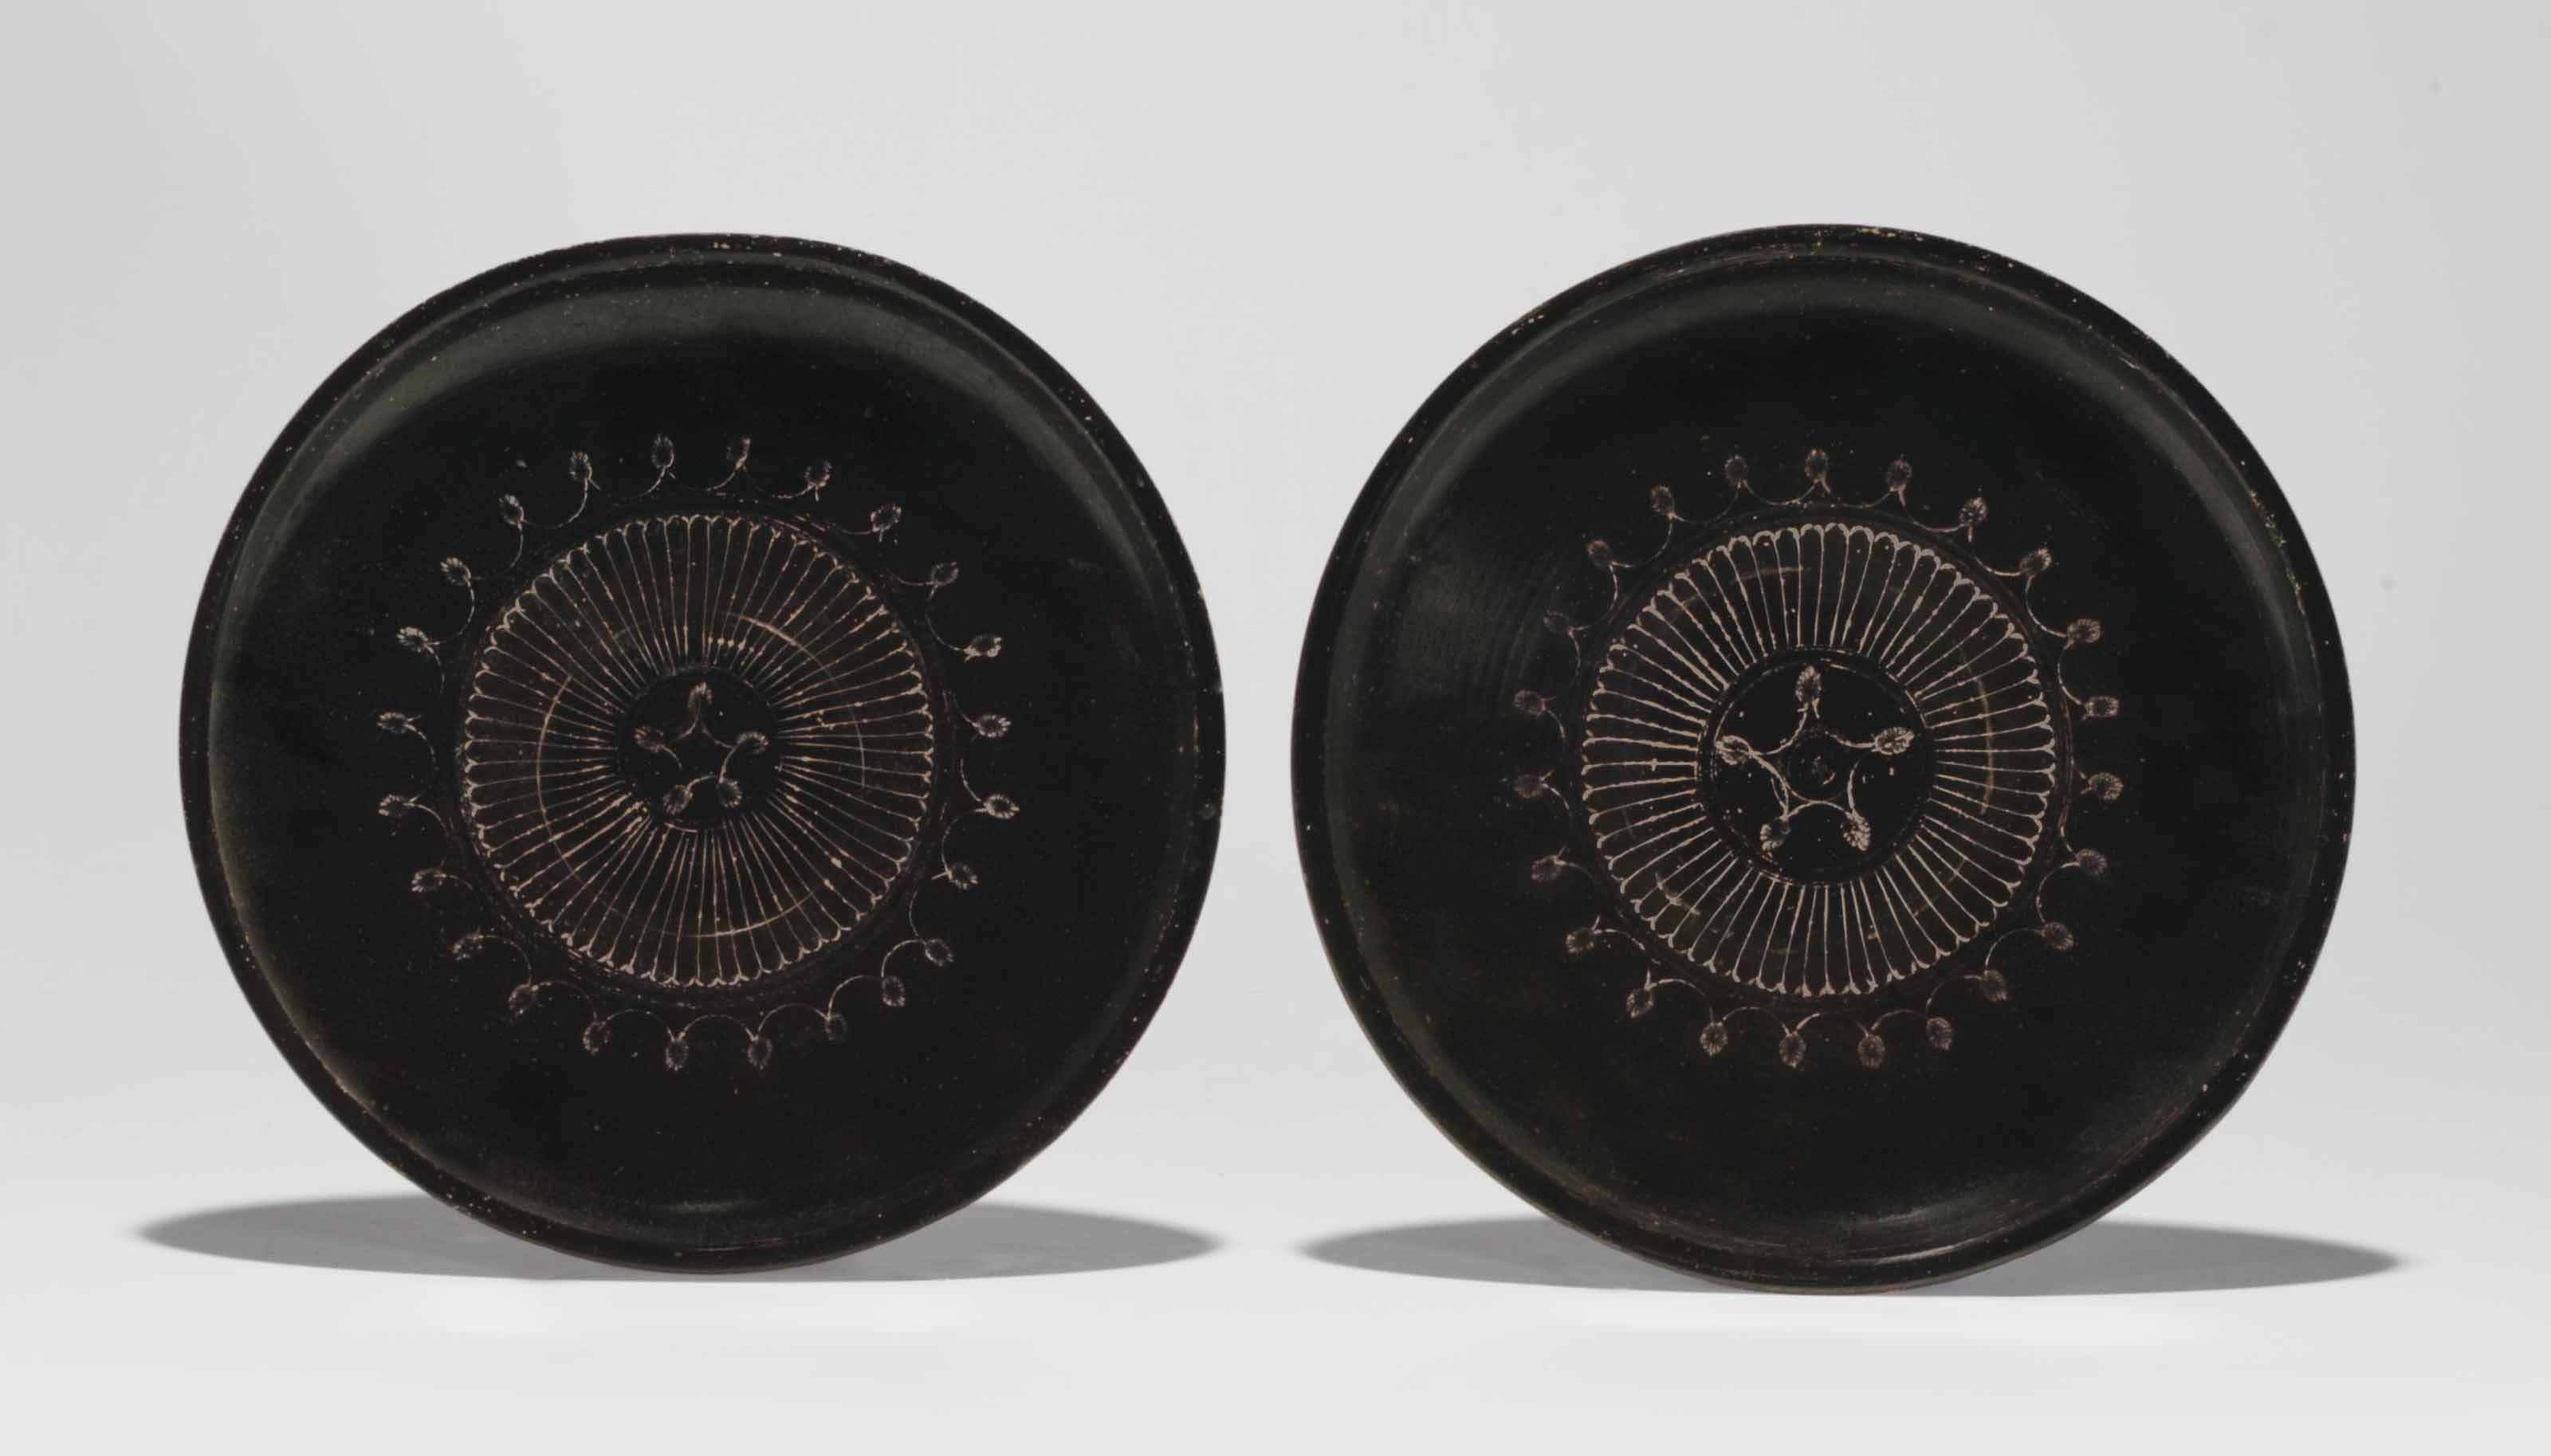 TWO ATTIC BLACK-GLAZED PLATES